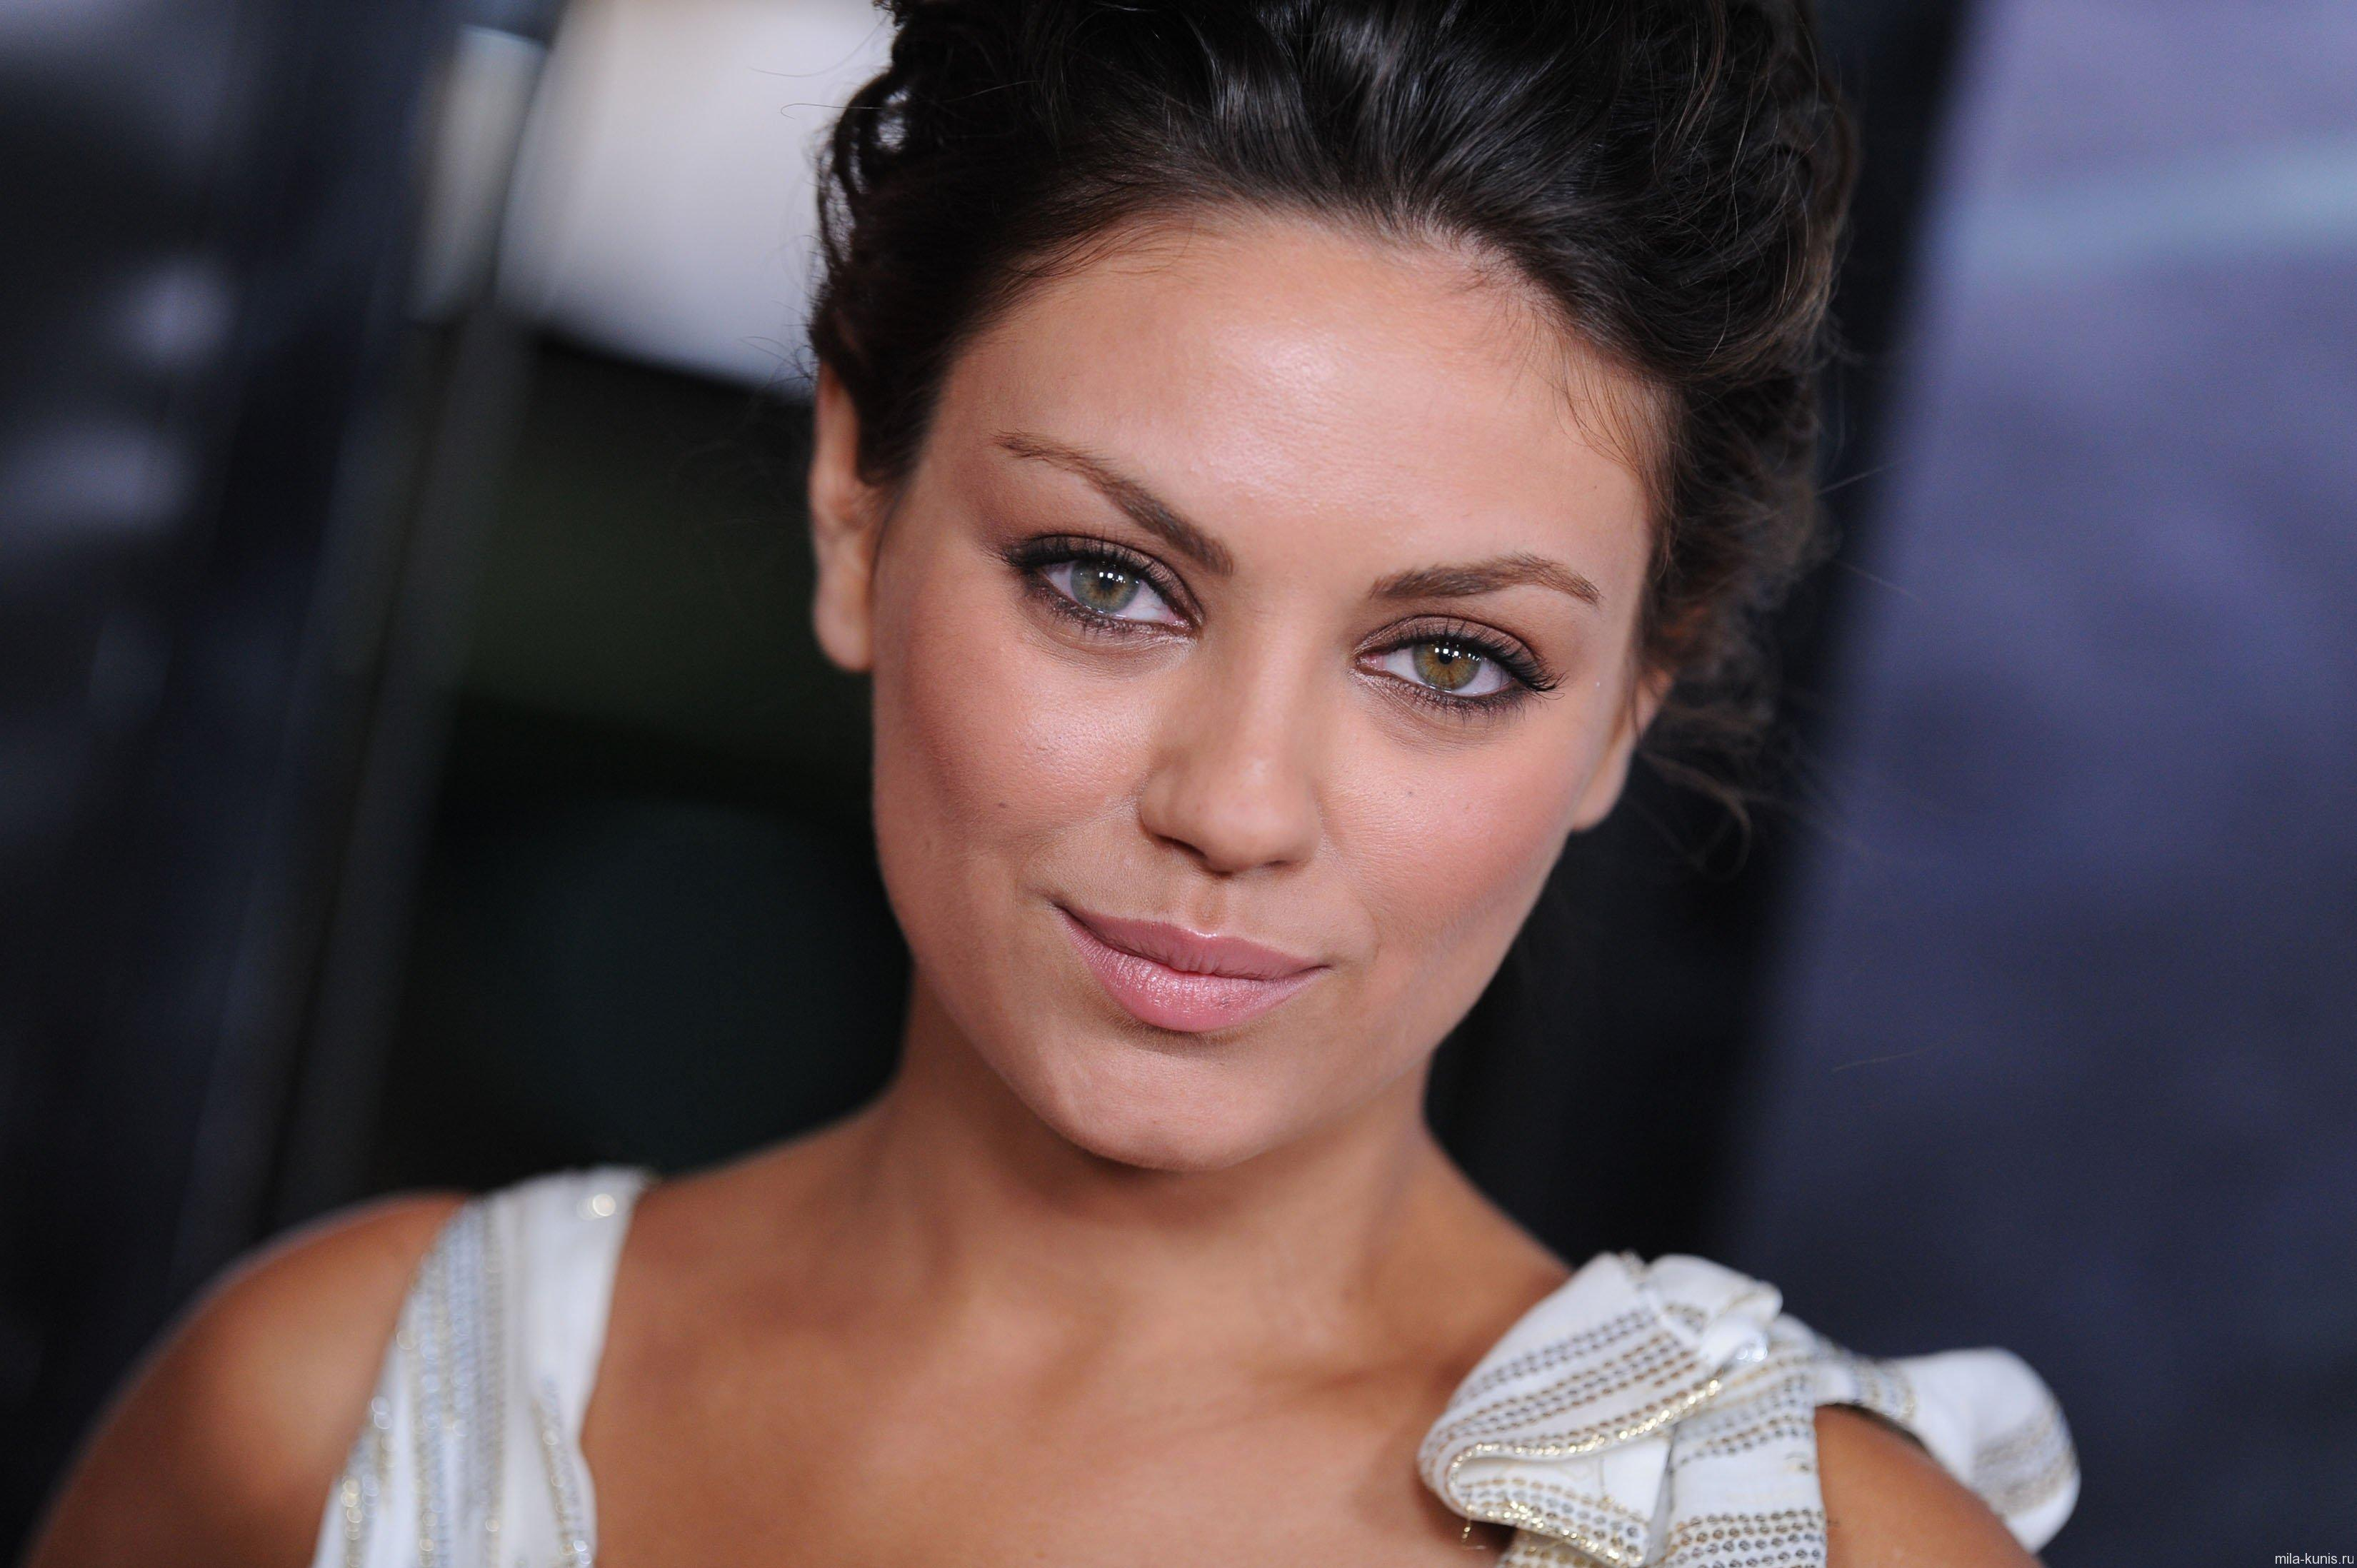 A List Of Celebrities With Two Colored Eyes Heterochromia - HD3300×2196